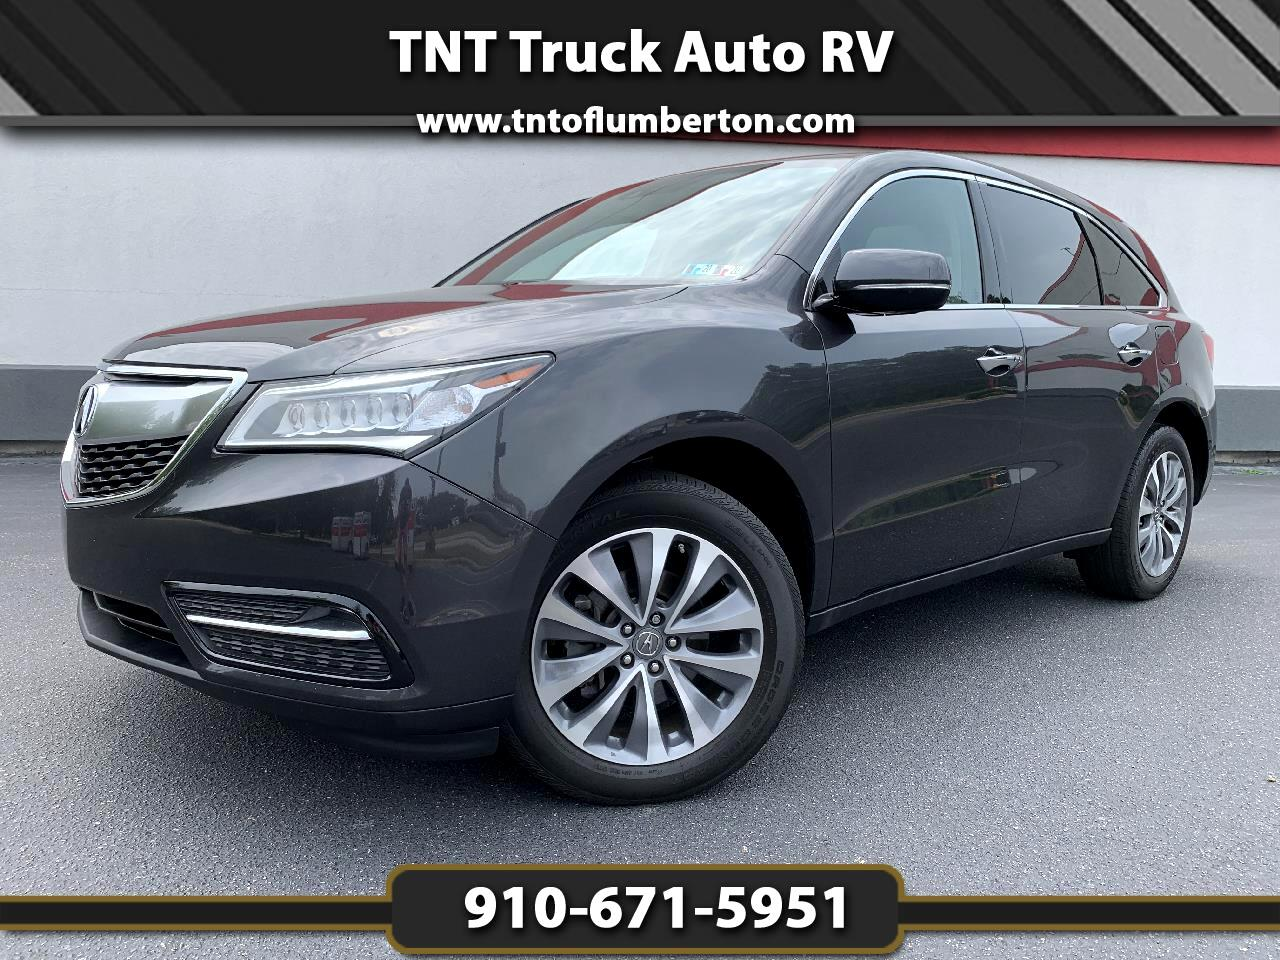 2014 Acura MDX SH-AWD w/ Technology Package